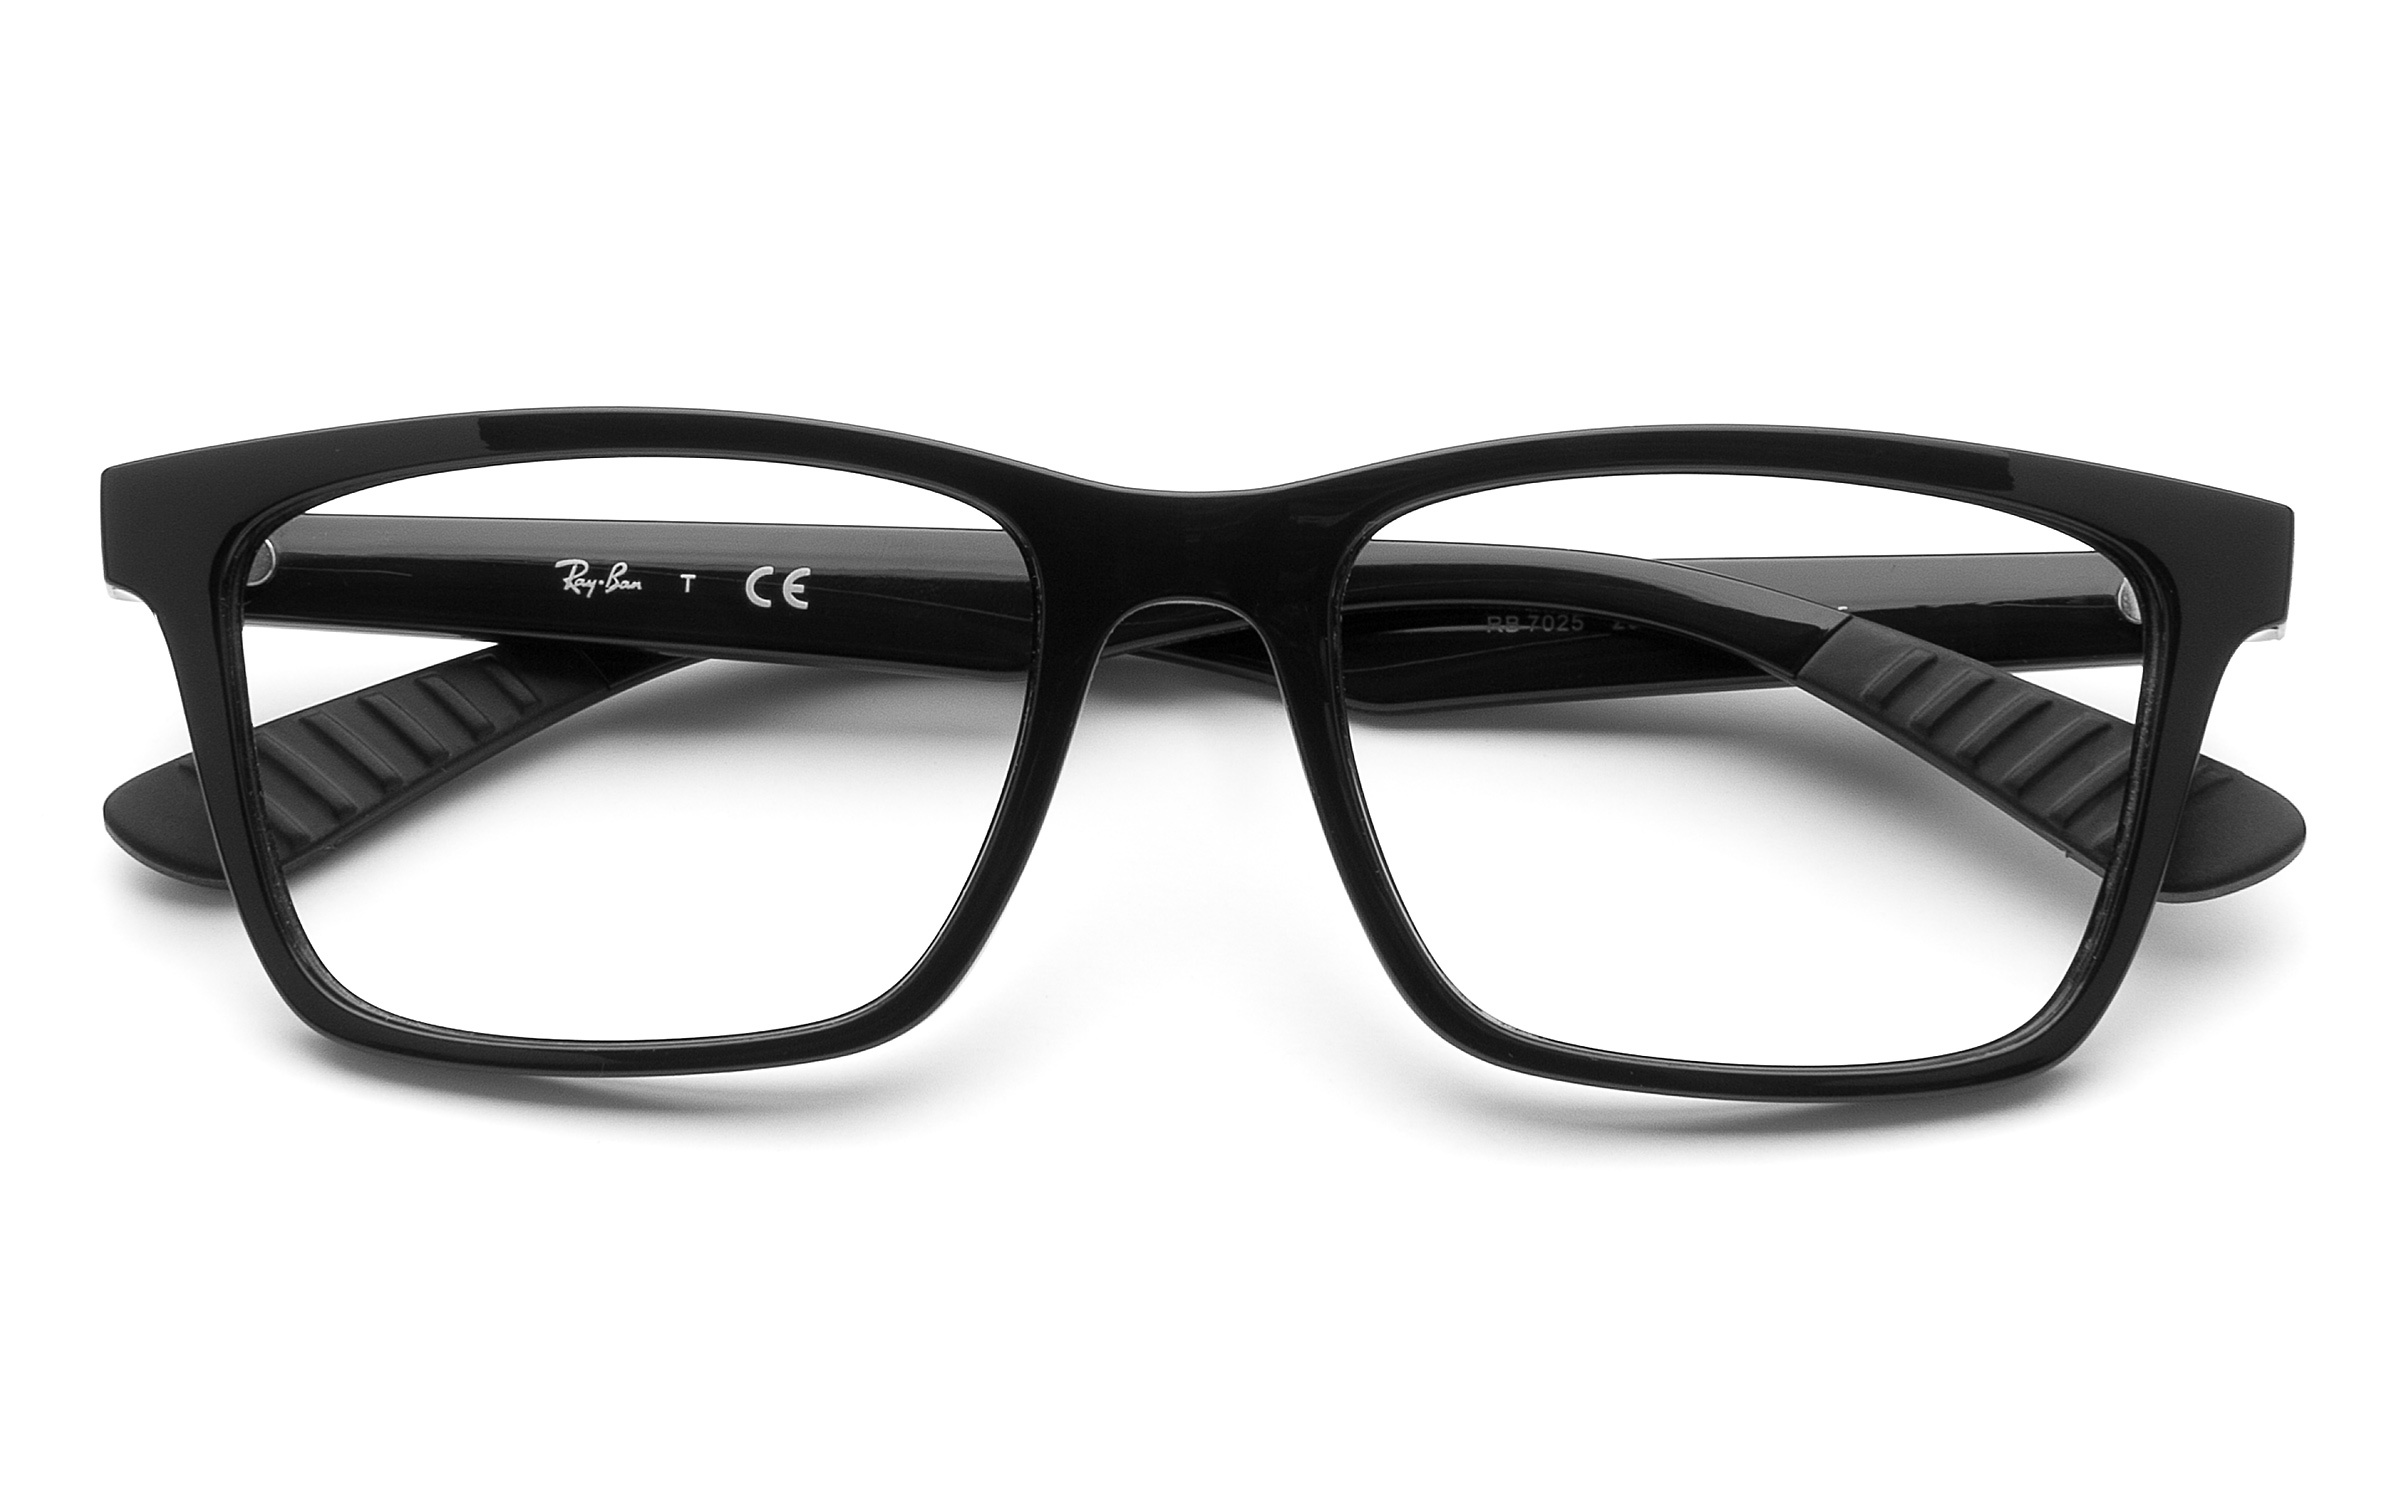 ray ban sunglasses online 7o5l  product image of Ray-Ban RX7025 Black